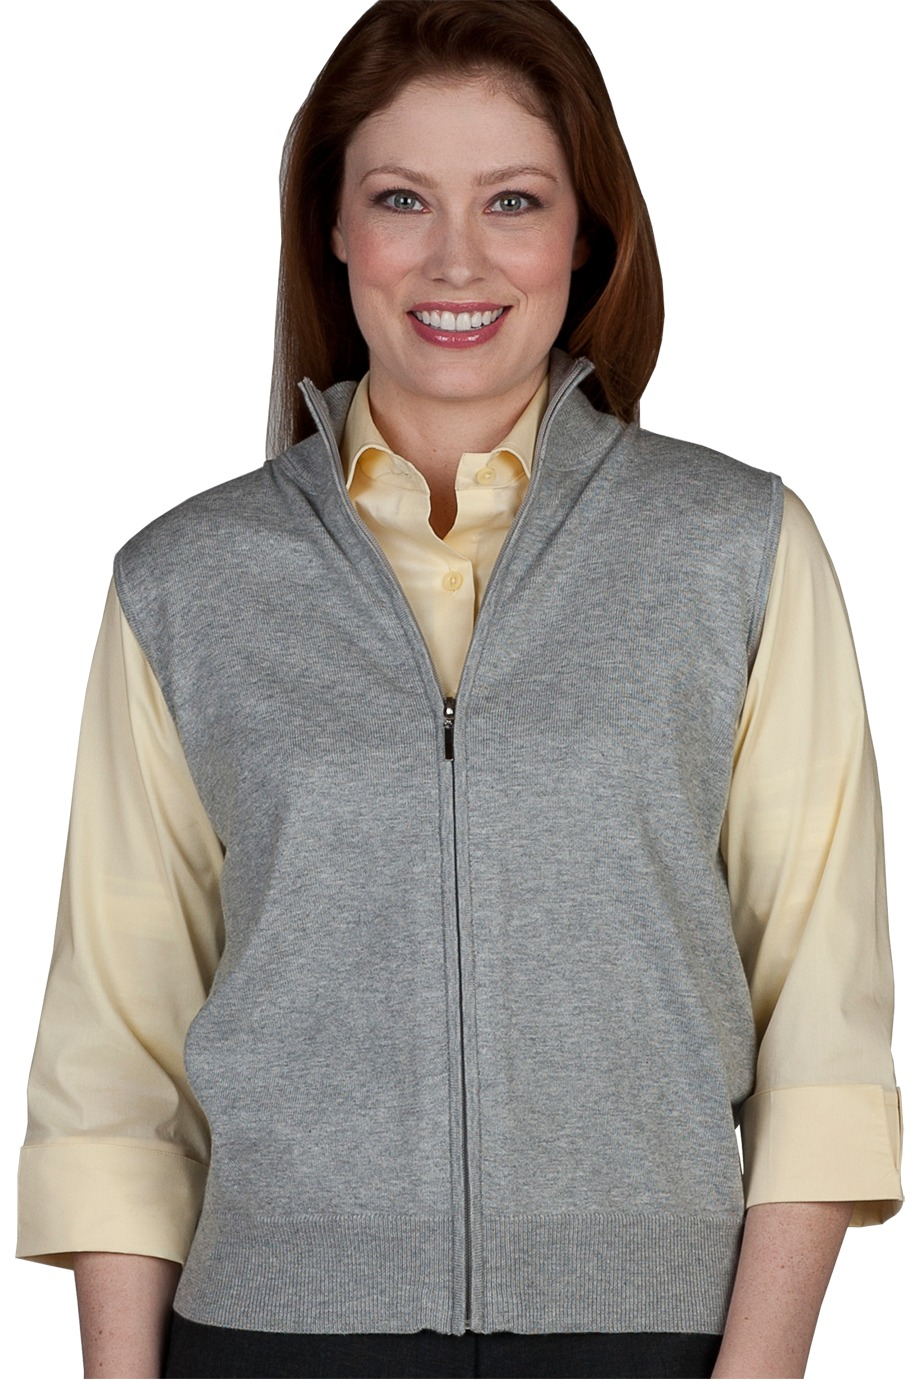 Edwards Garment 063 - Women's Full Zip Cardigan Vest